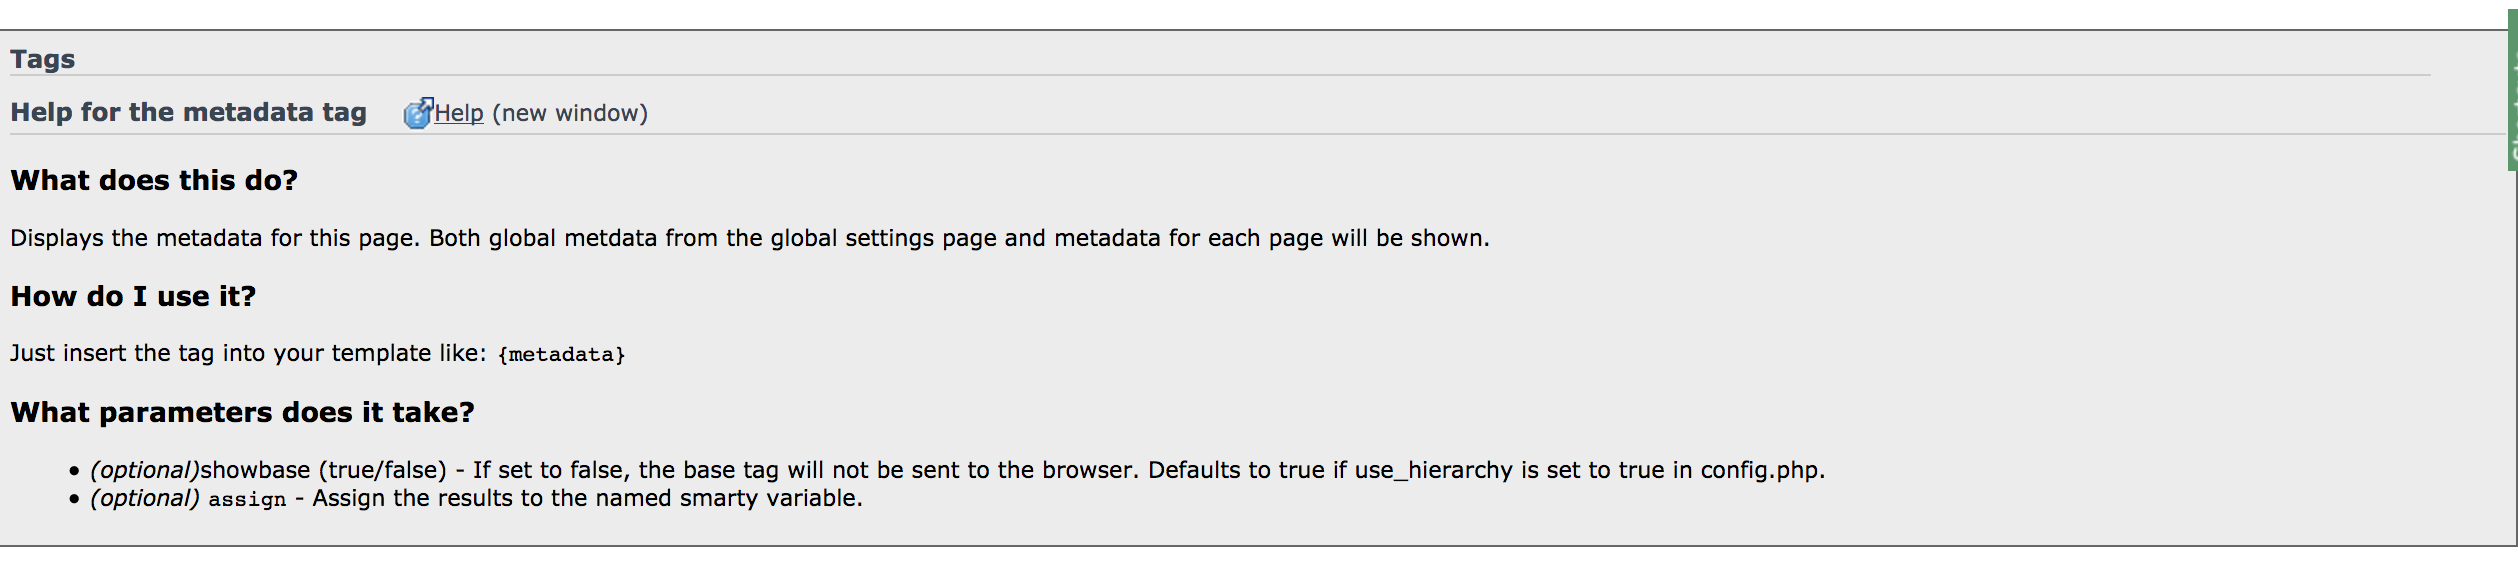 Documentation about the metadata tag